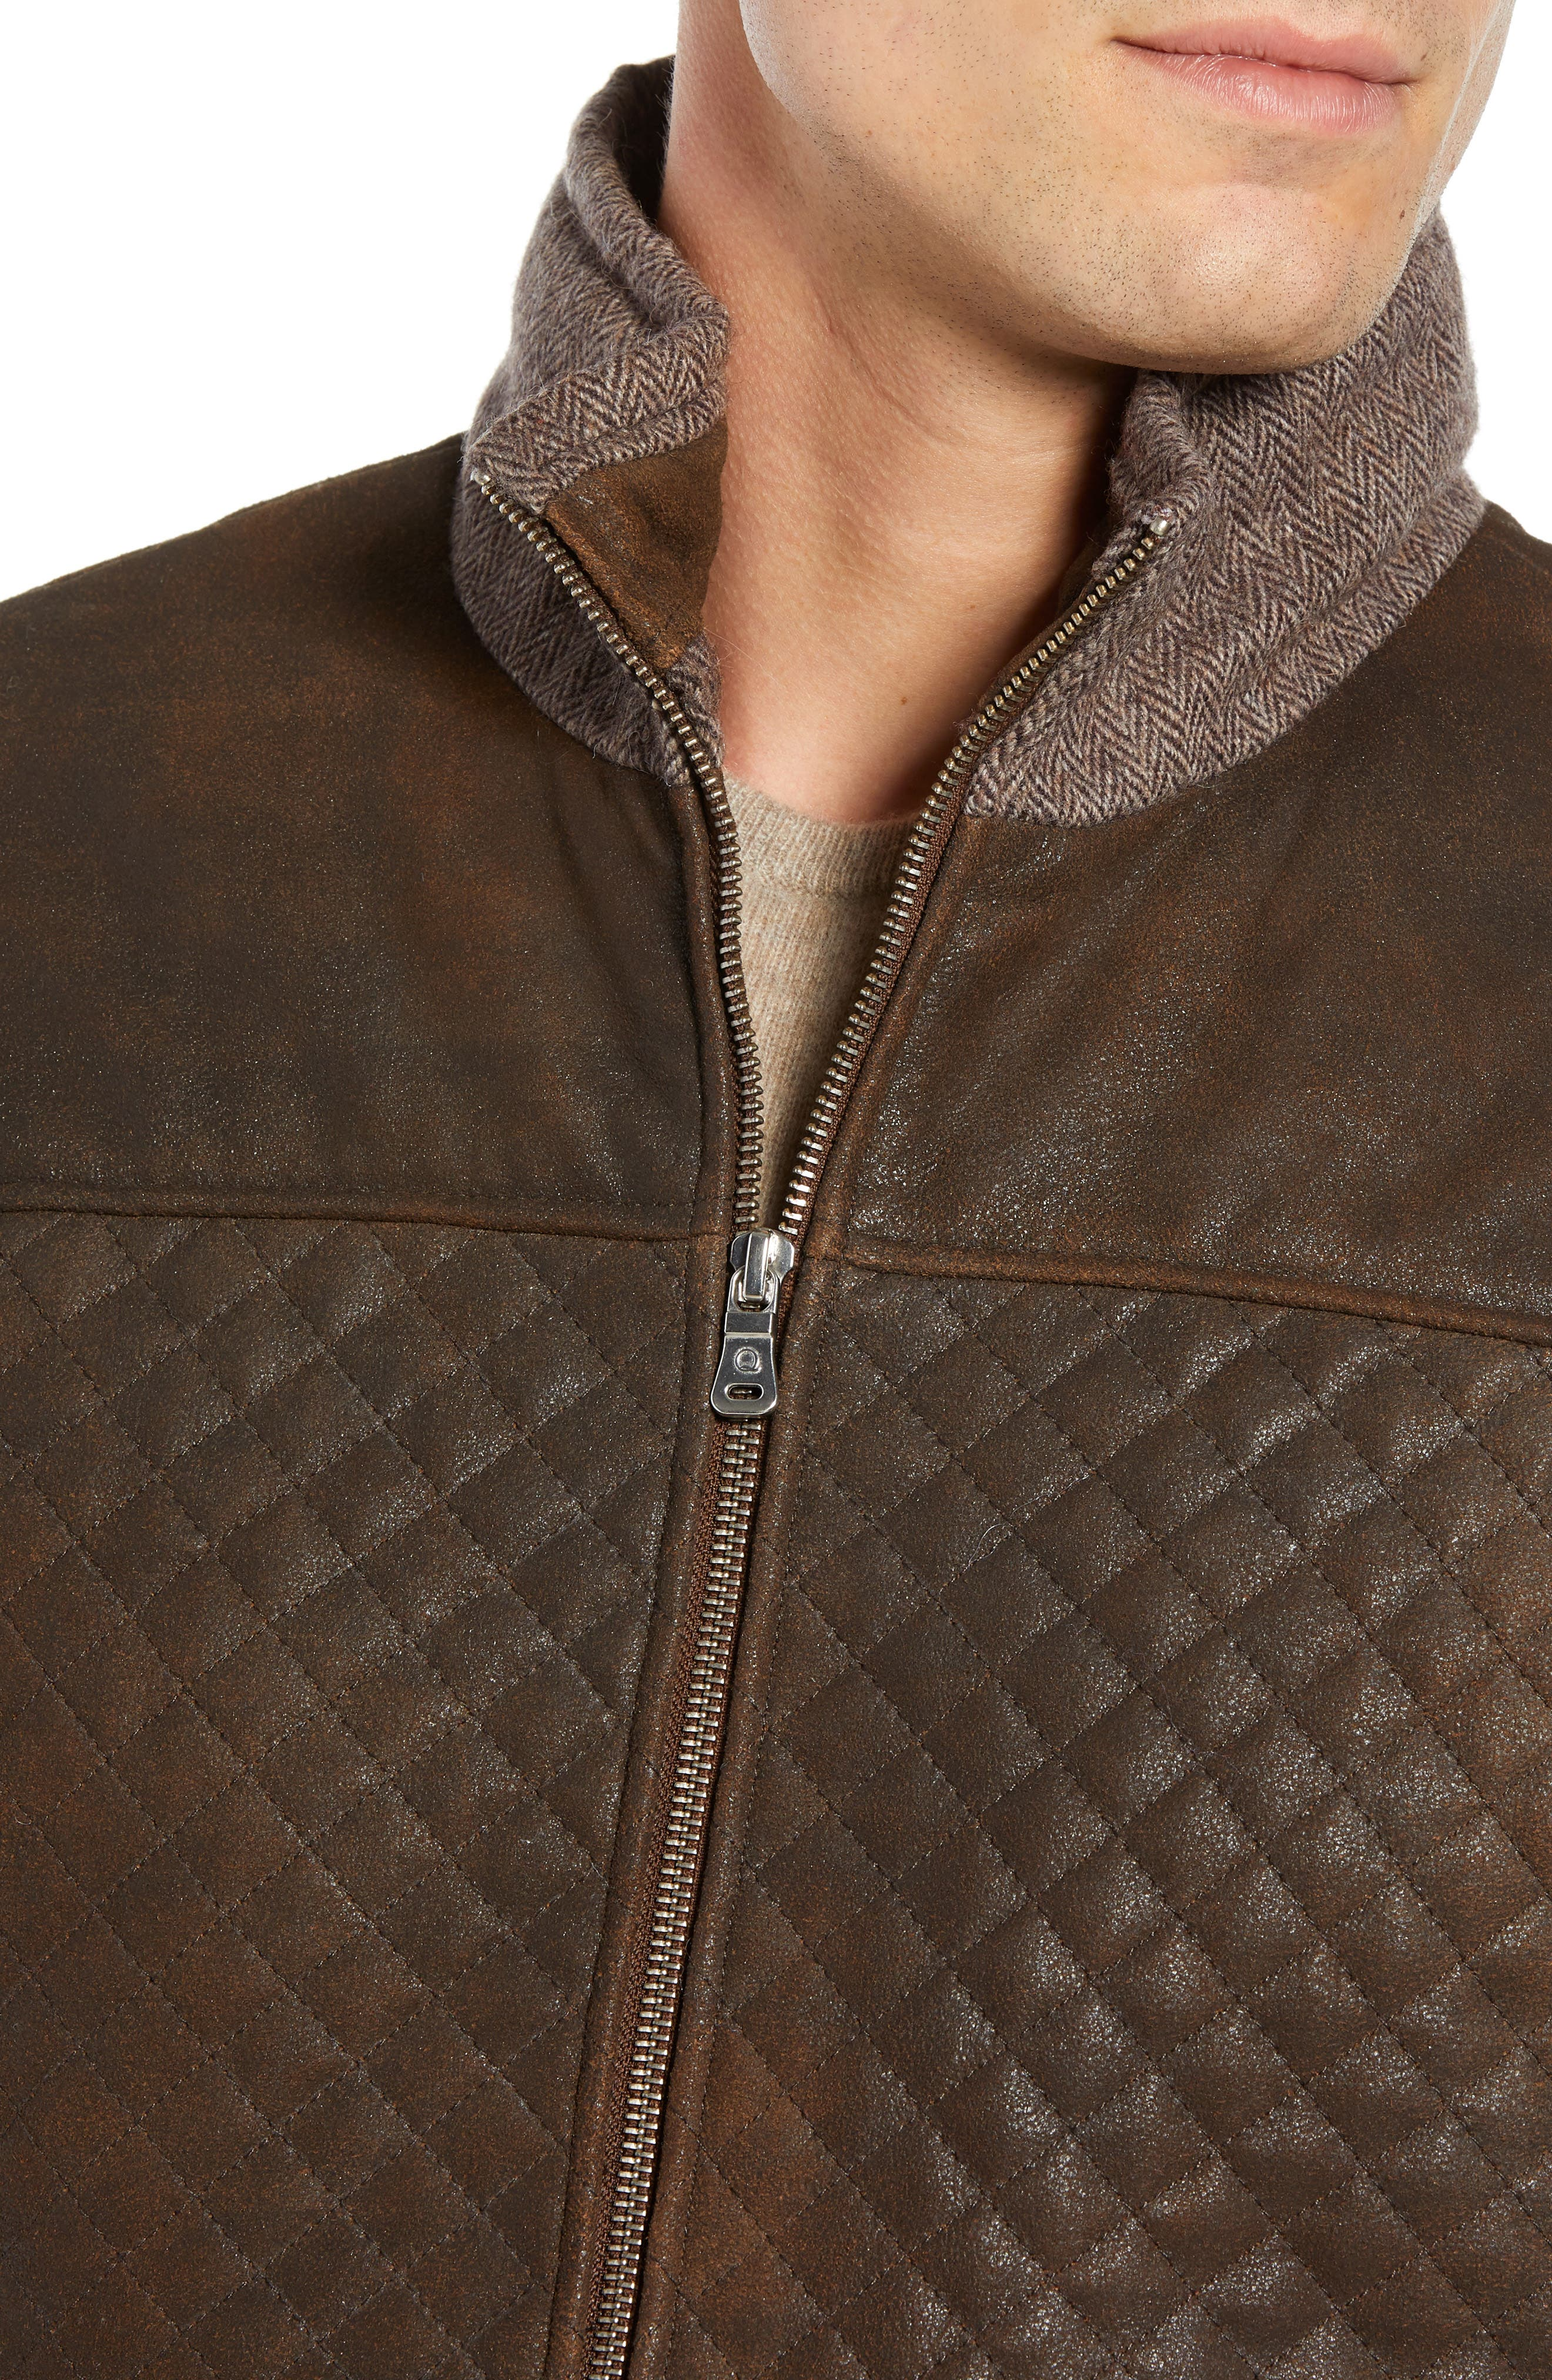 Quilted Leather & Wool Vest,                             Alternate thumbnail 4, color,                             201